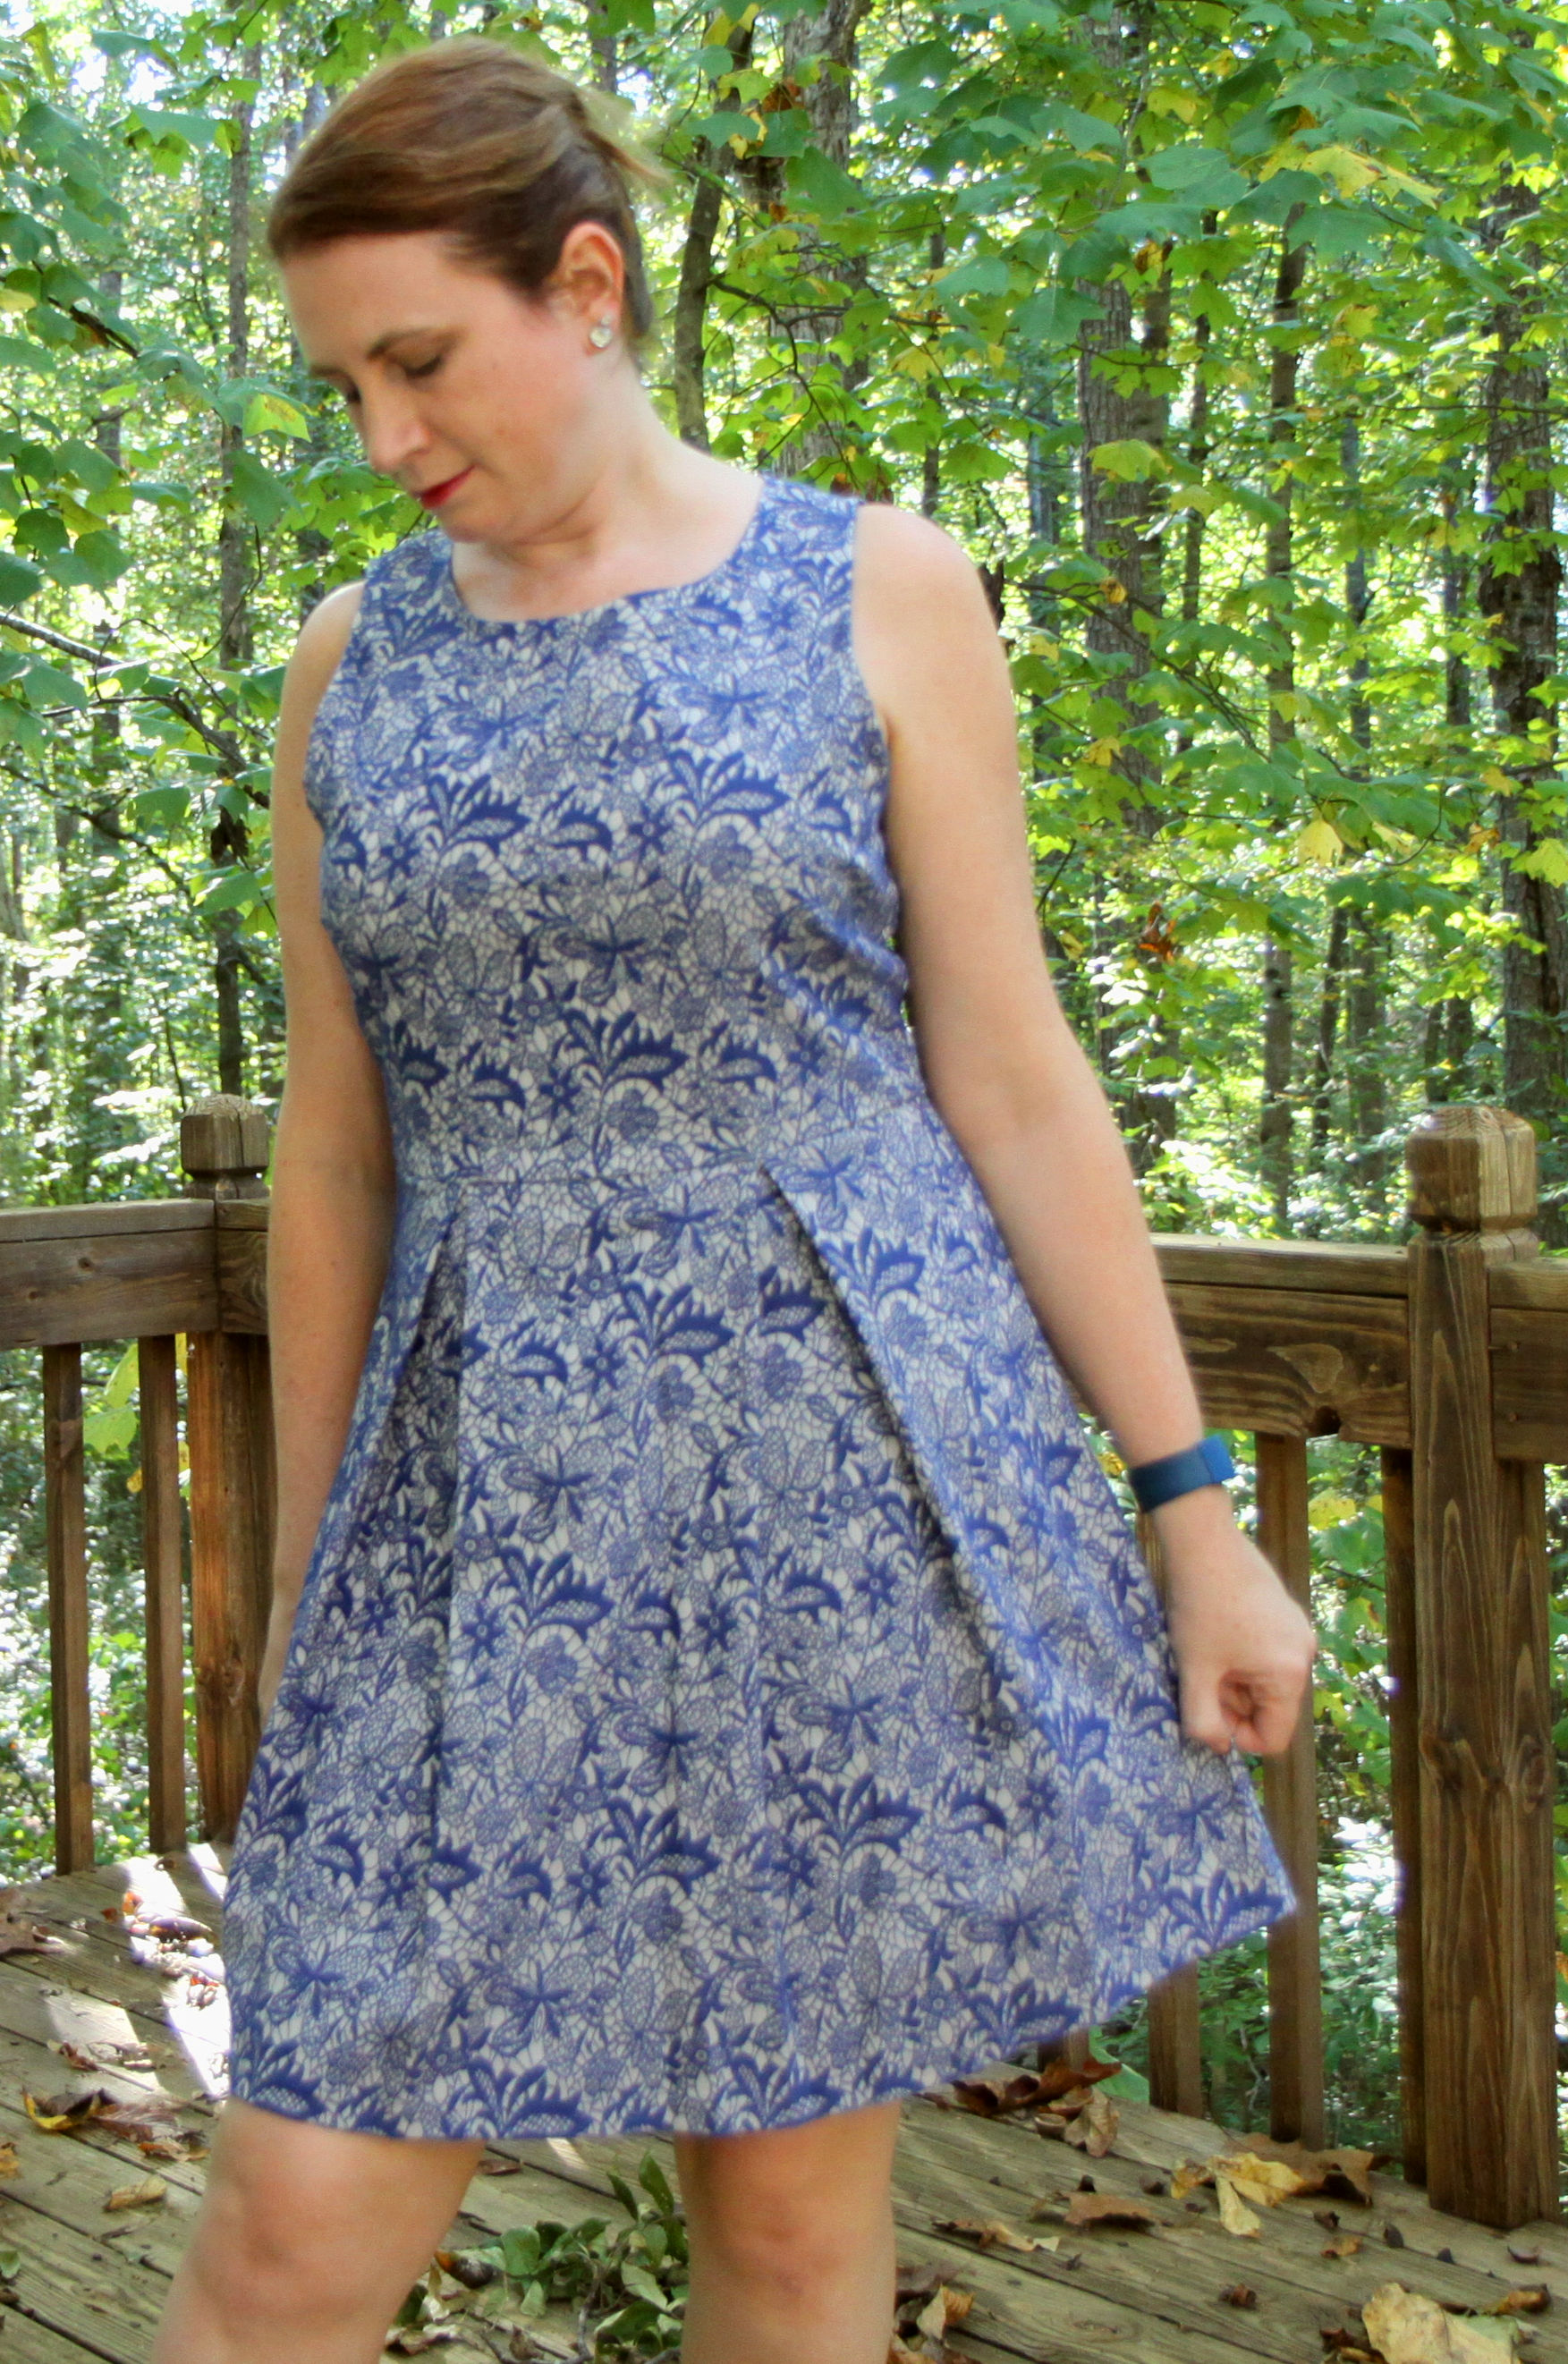 I have only worn this dress for this photo shoot! Jace Embroidered Lace Dress by 41Hawthorn and from  Stitch Fix .